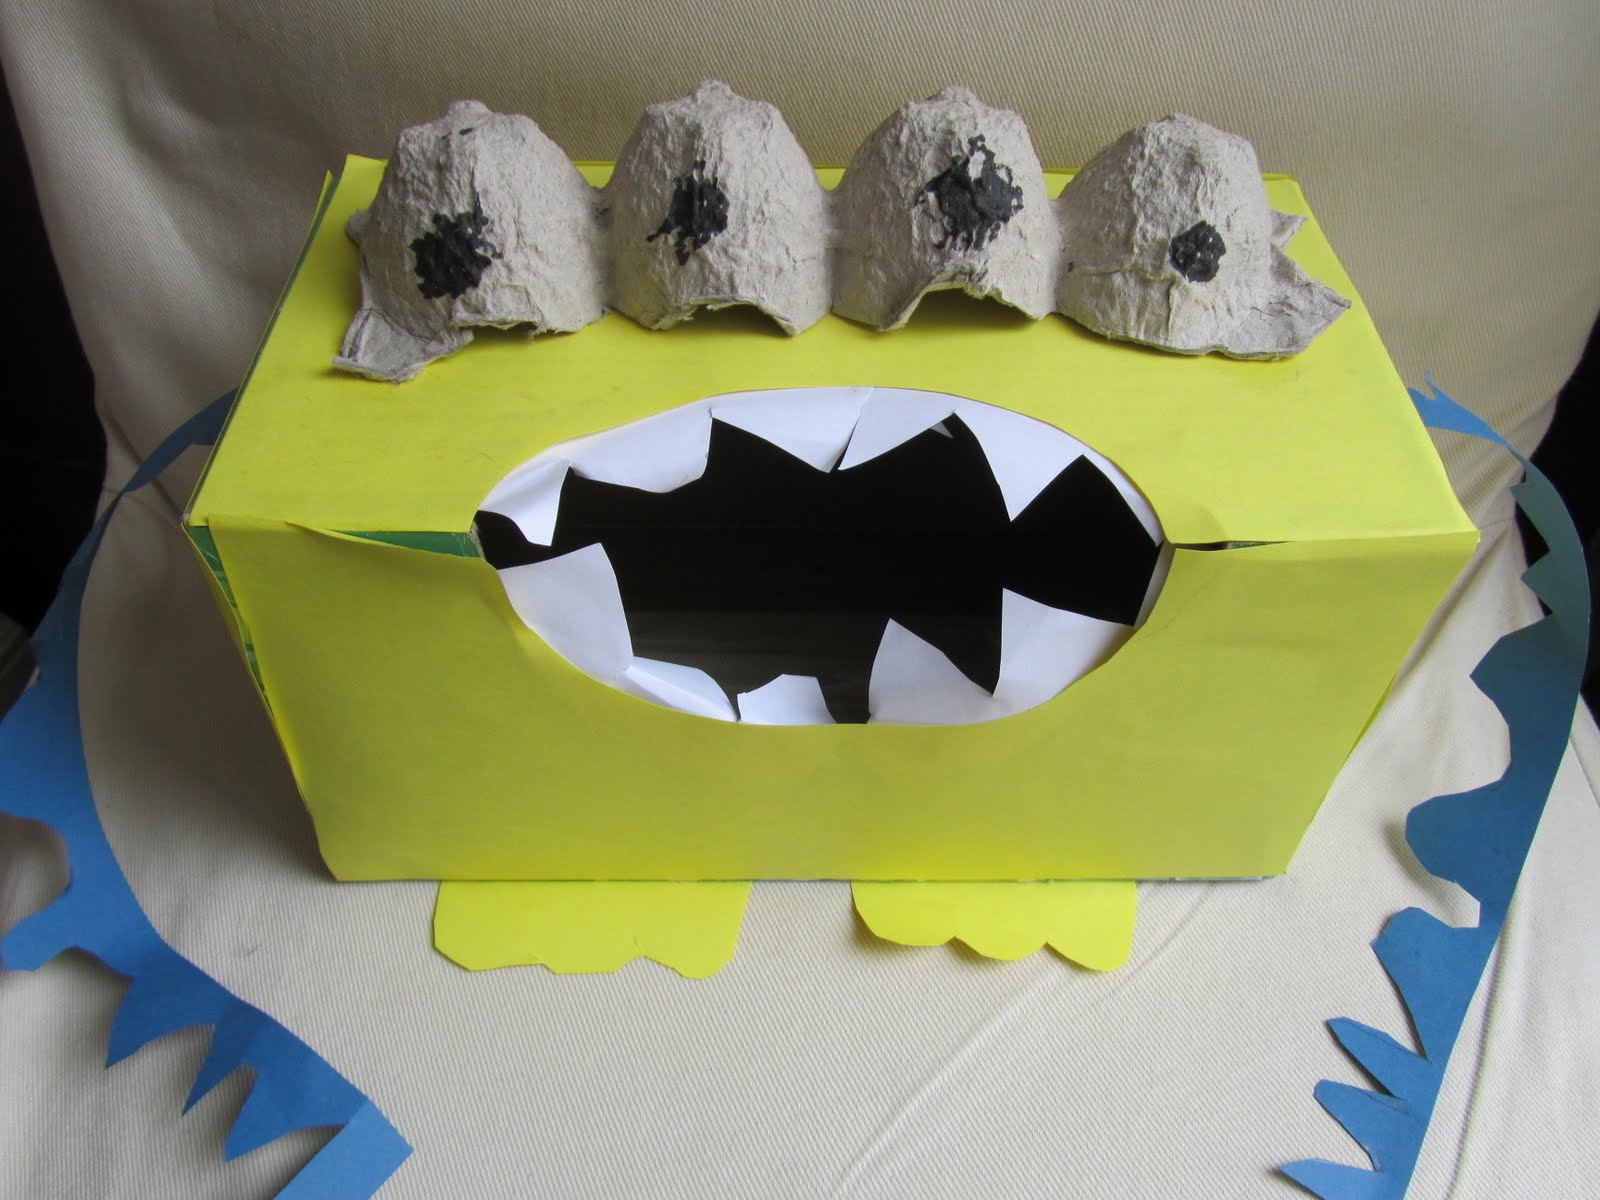 then there were the tissue box monster feet (yeah, I had to toss those ...